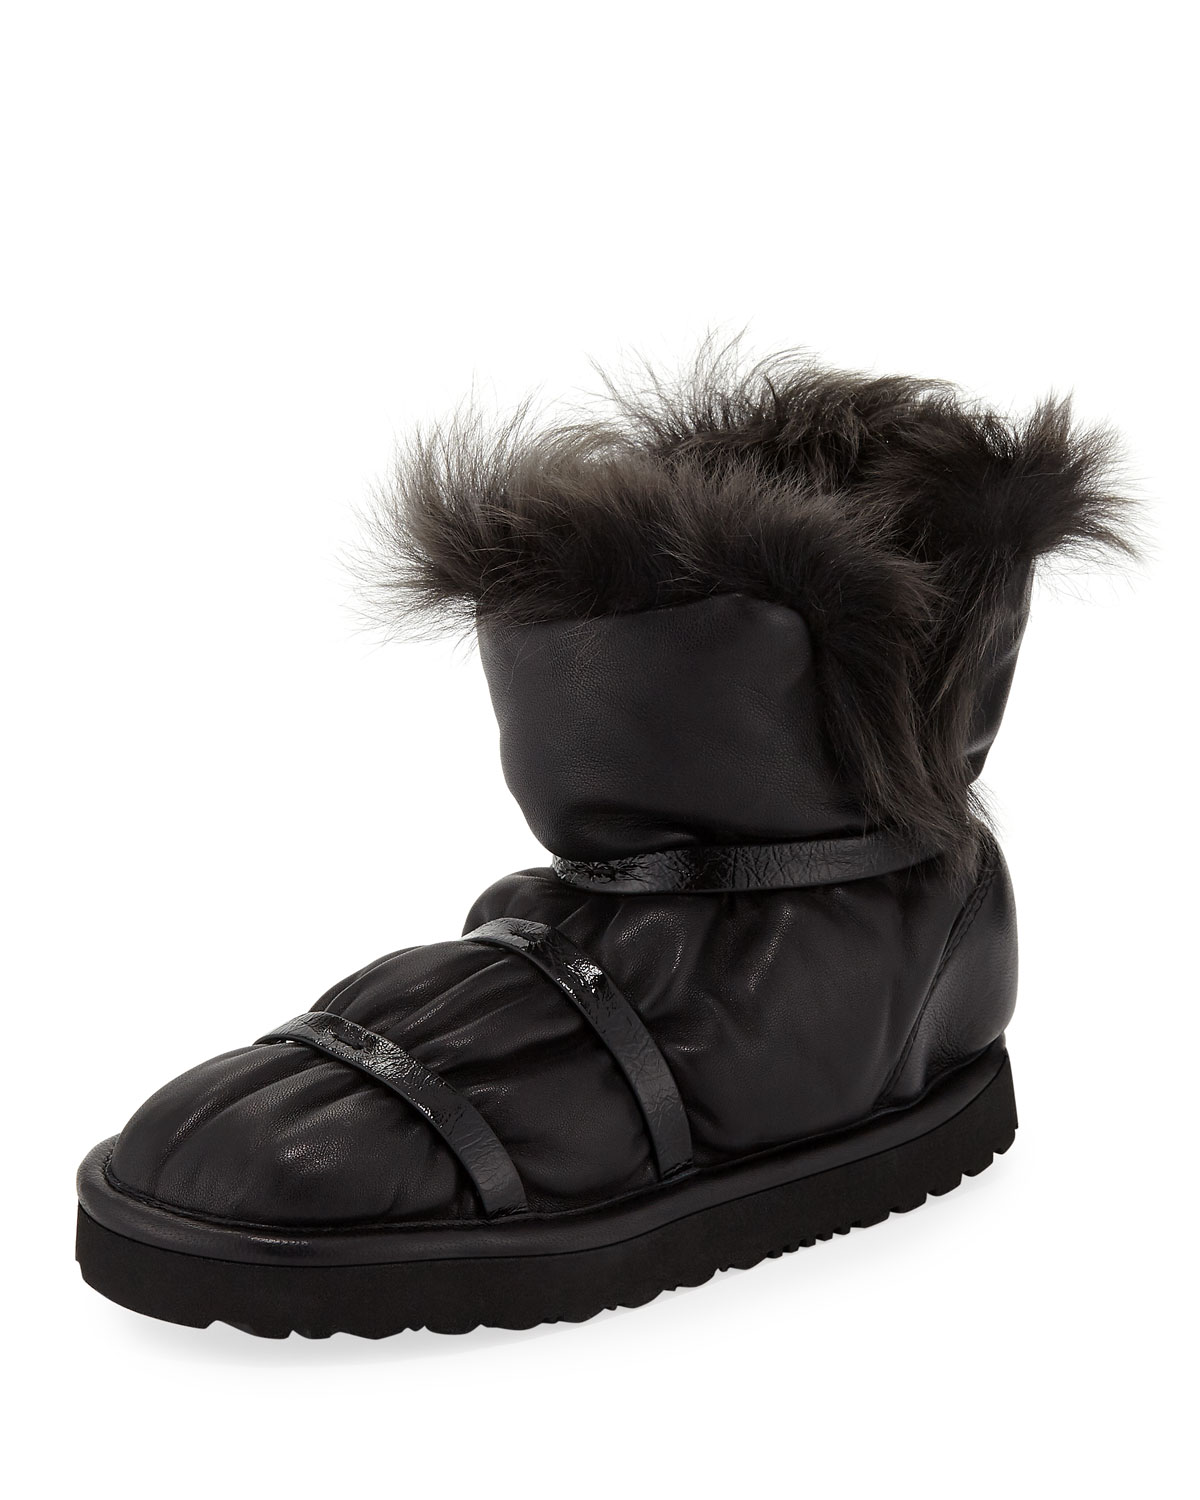 Janica Leather Flat Winter Boots